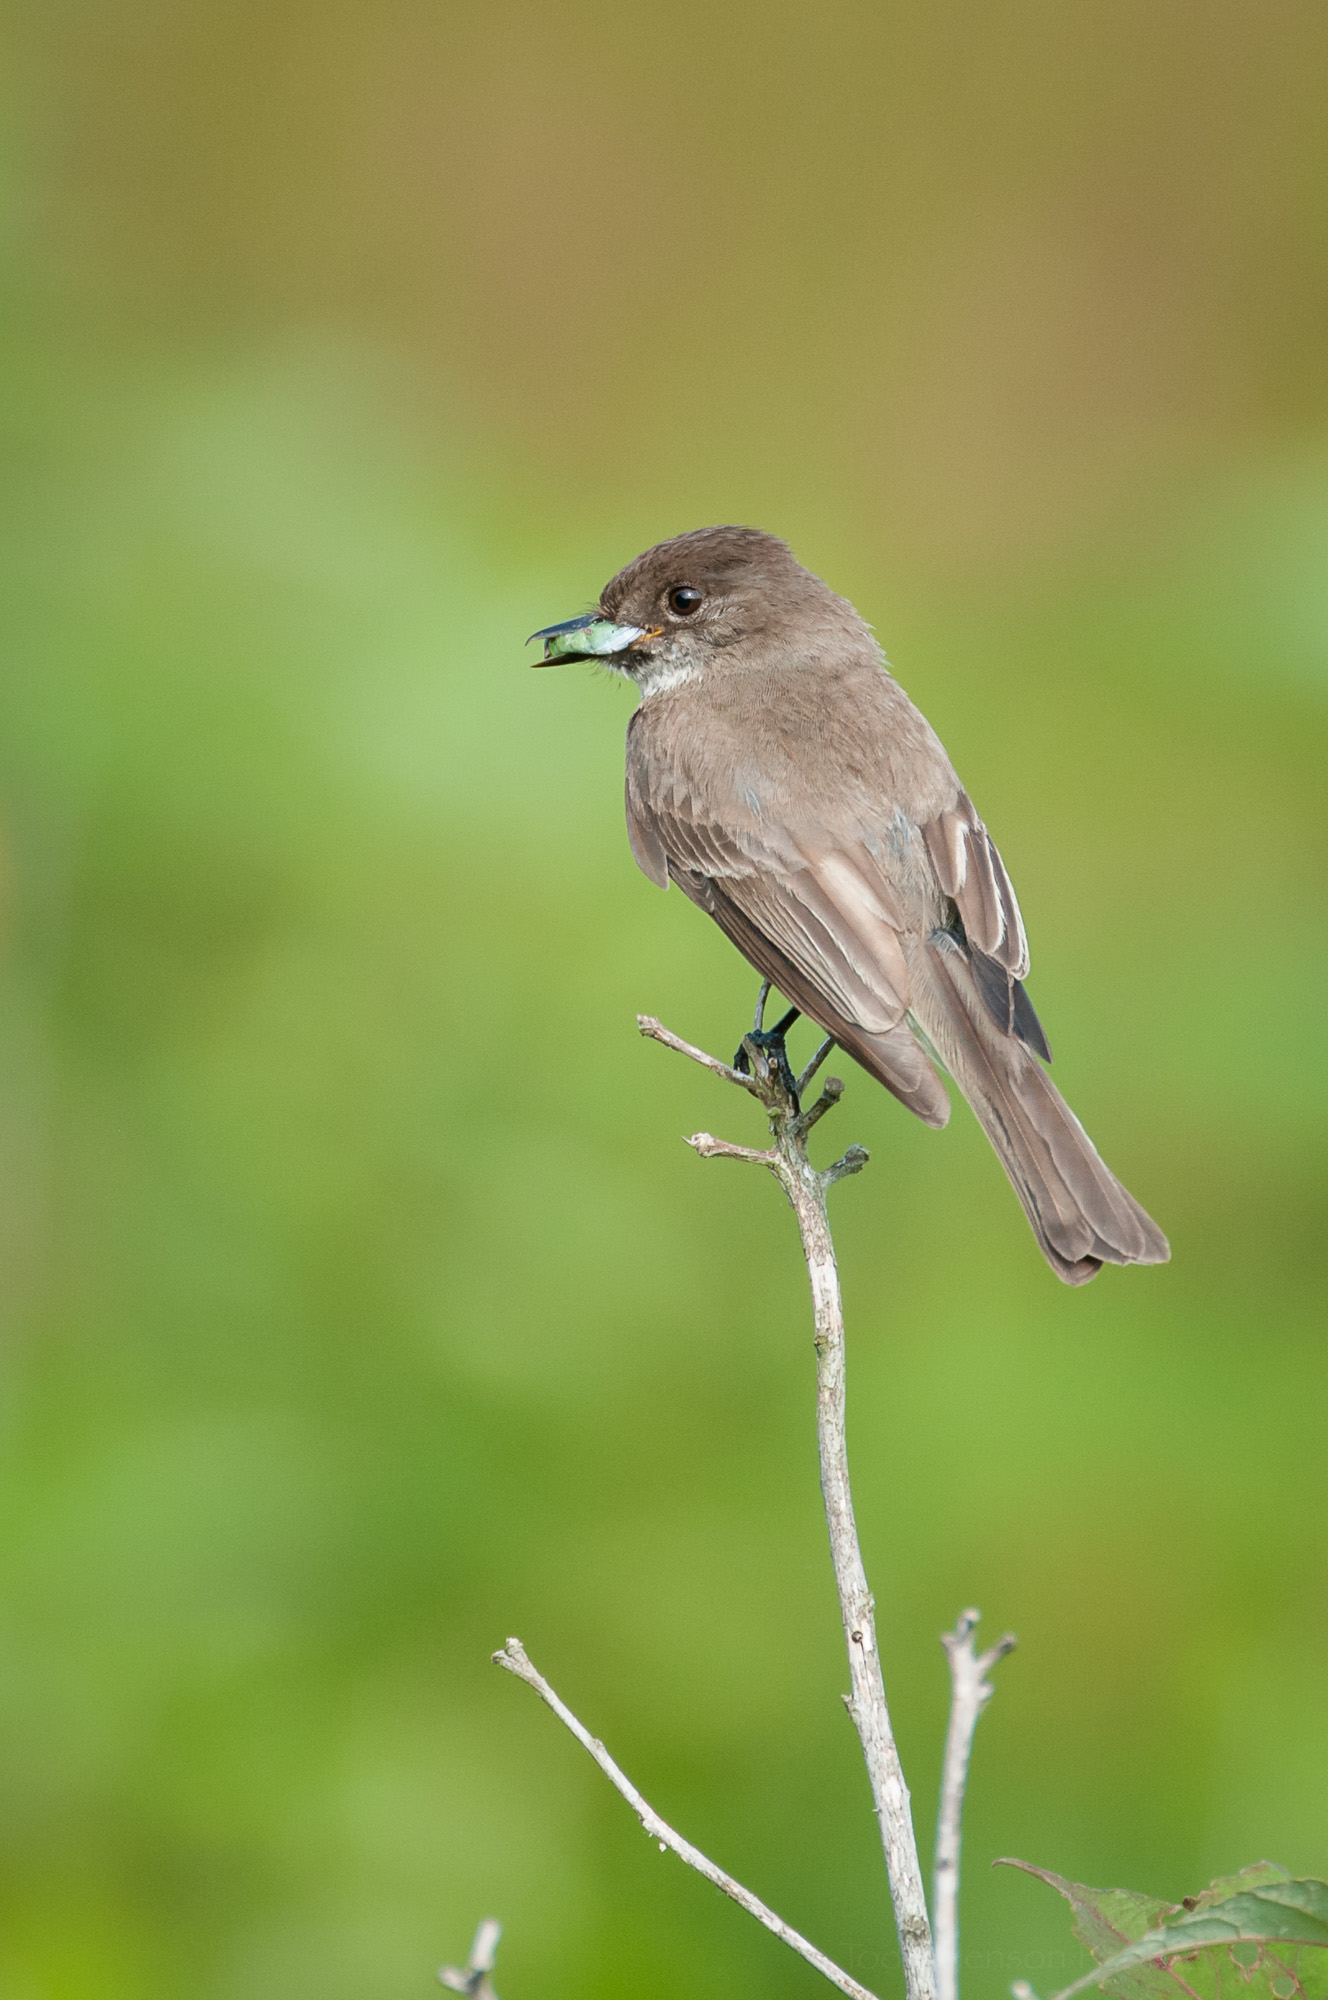 Eastern Phoebe with an insect in its beak